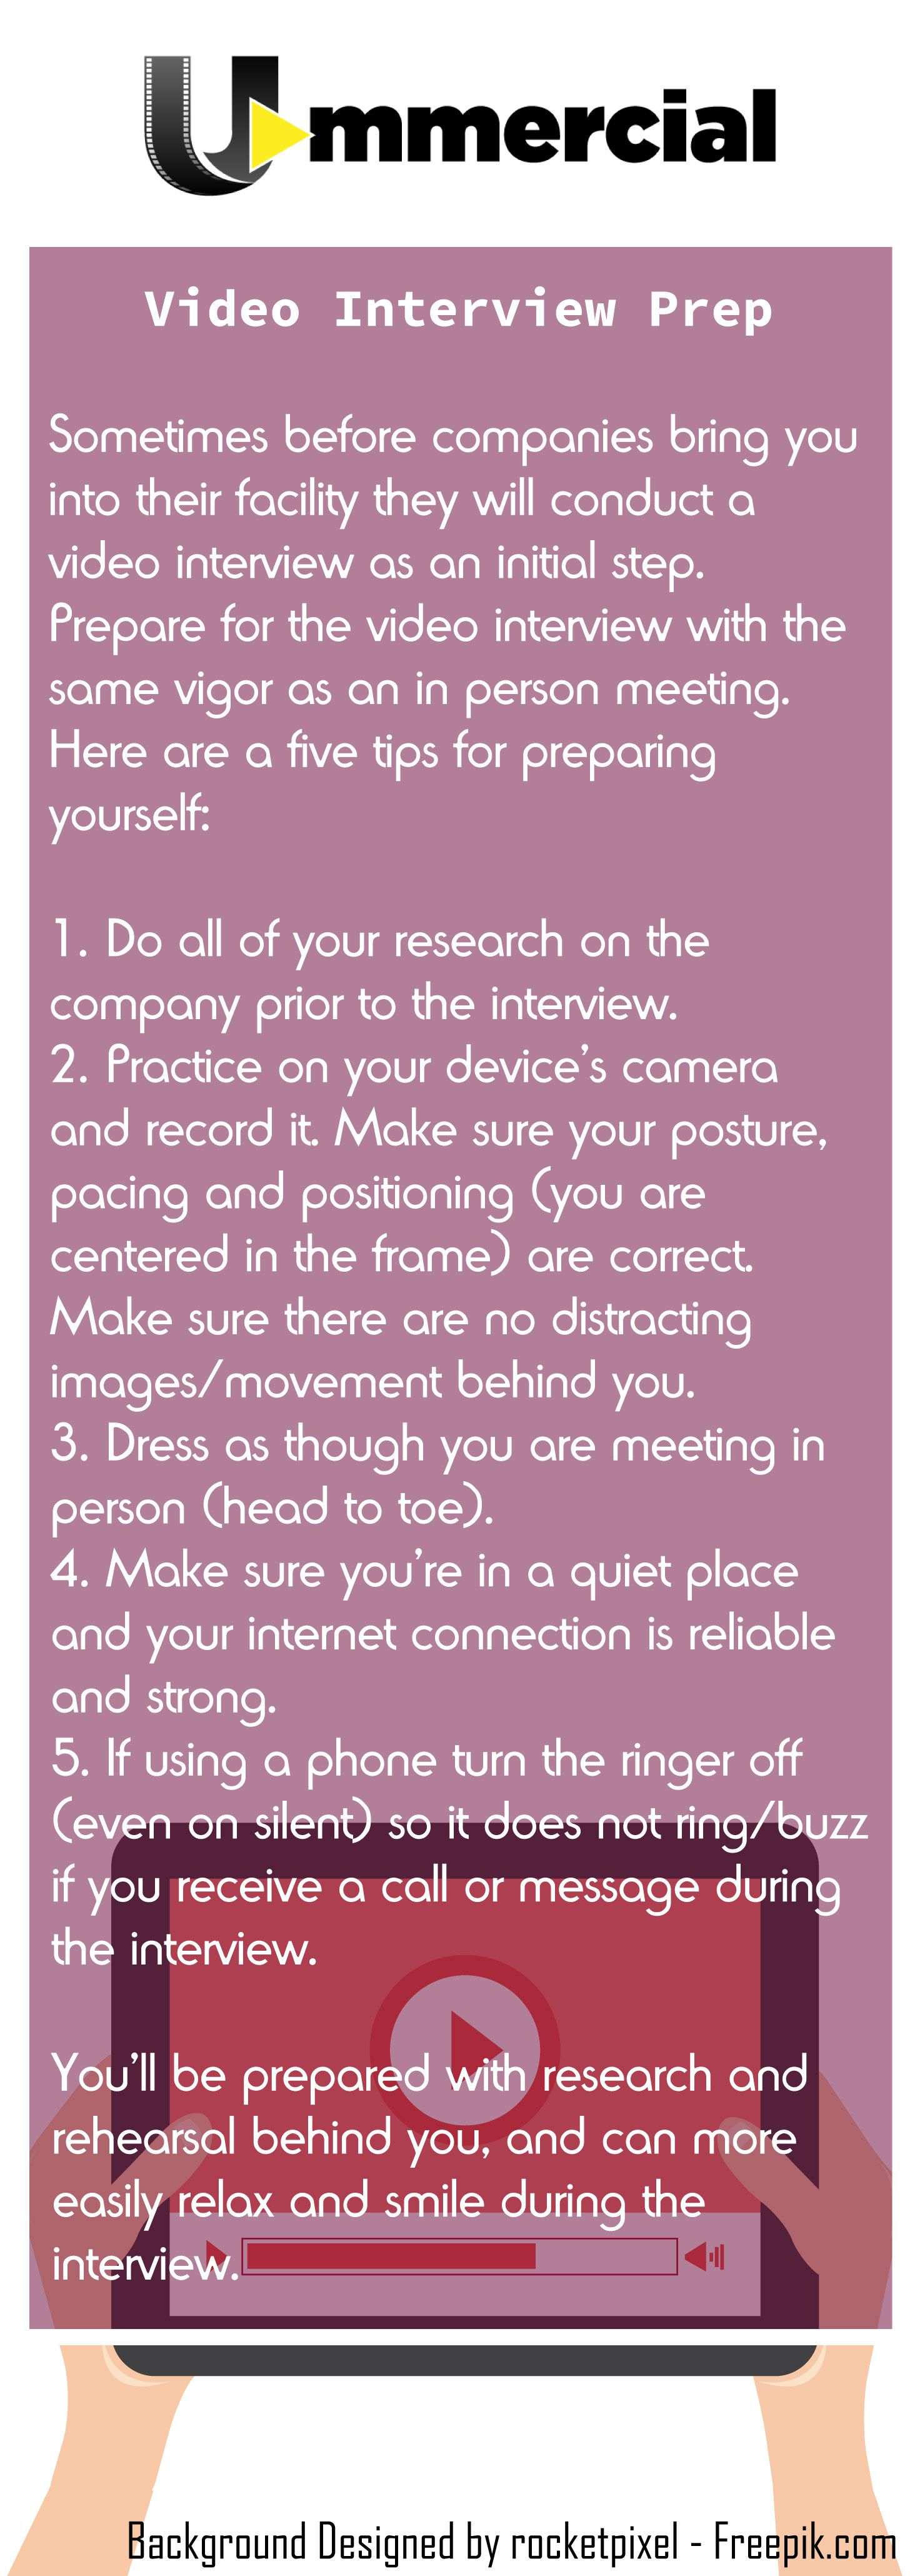 Pin by Ummercial on Get a JOB Resume tips, Resume